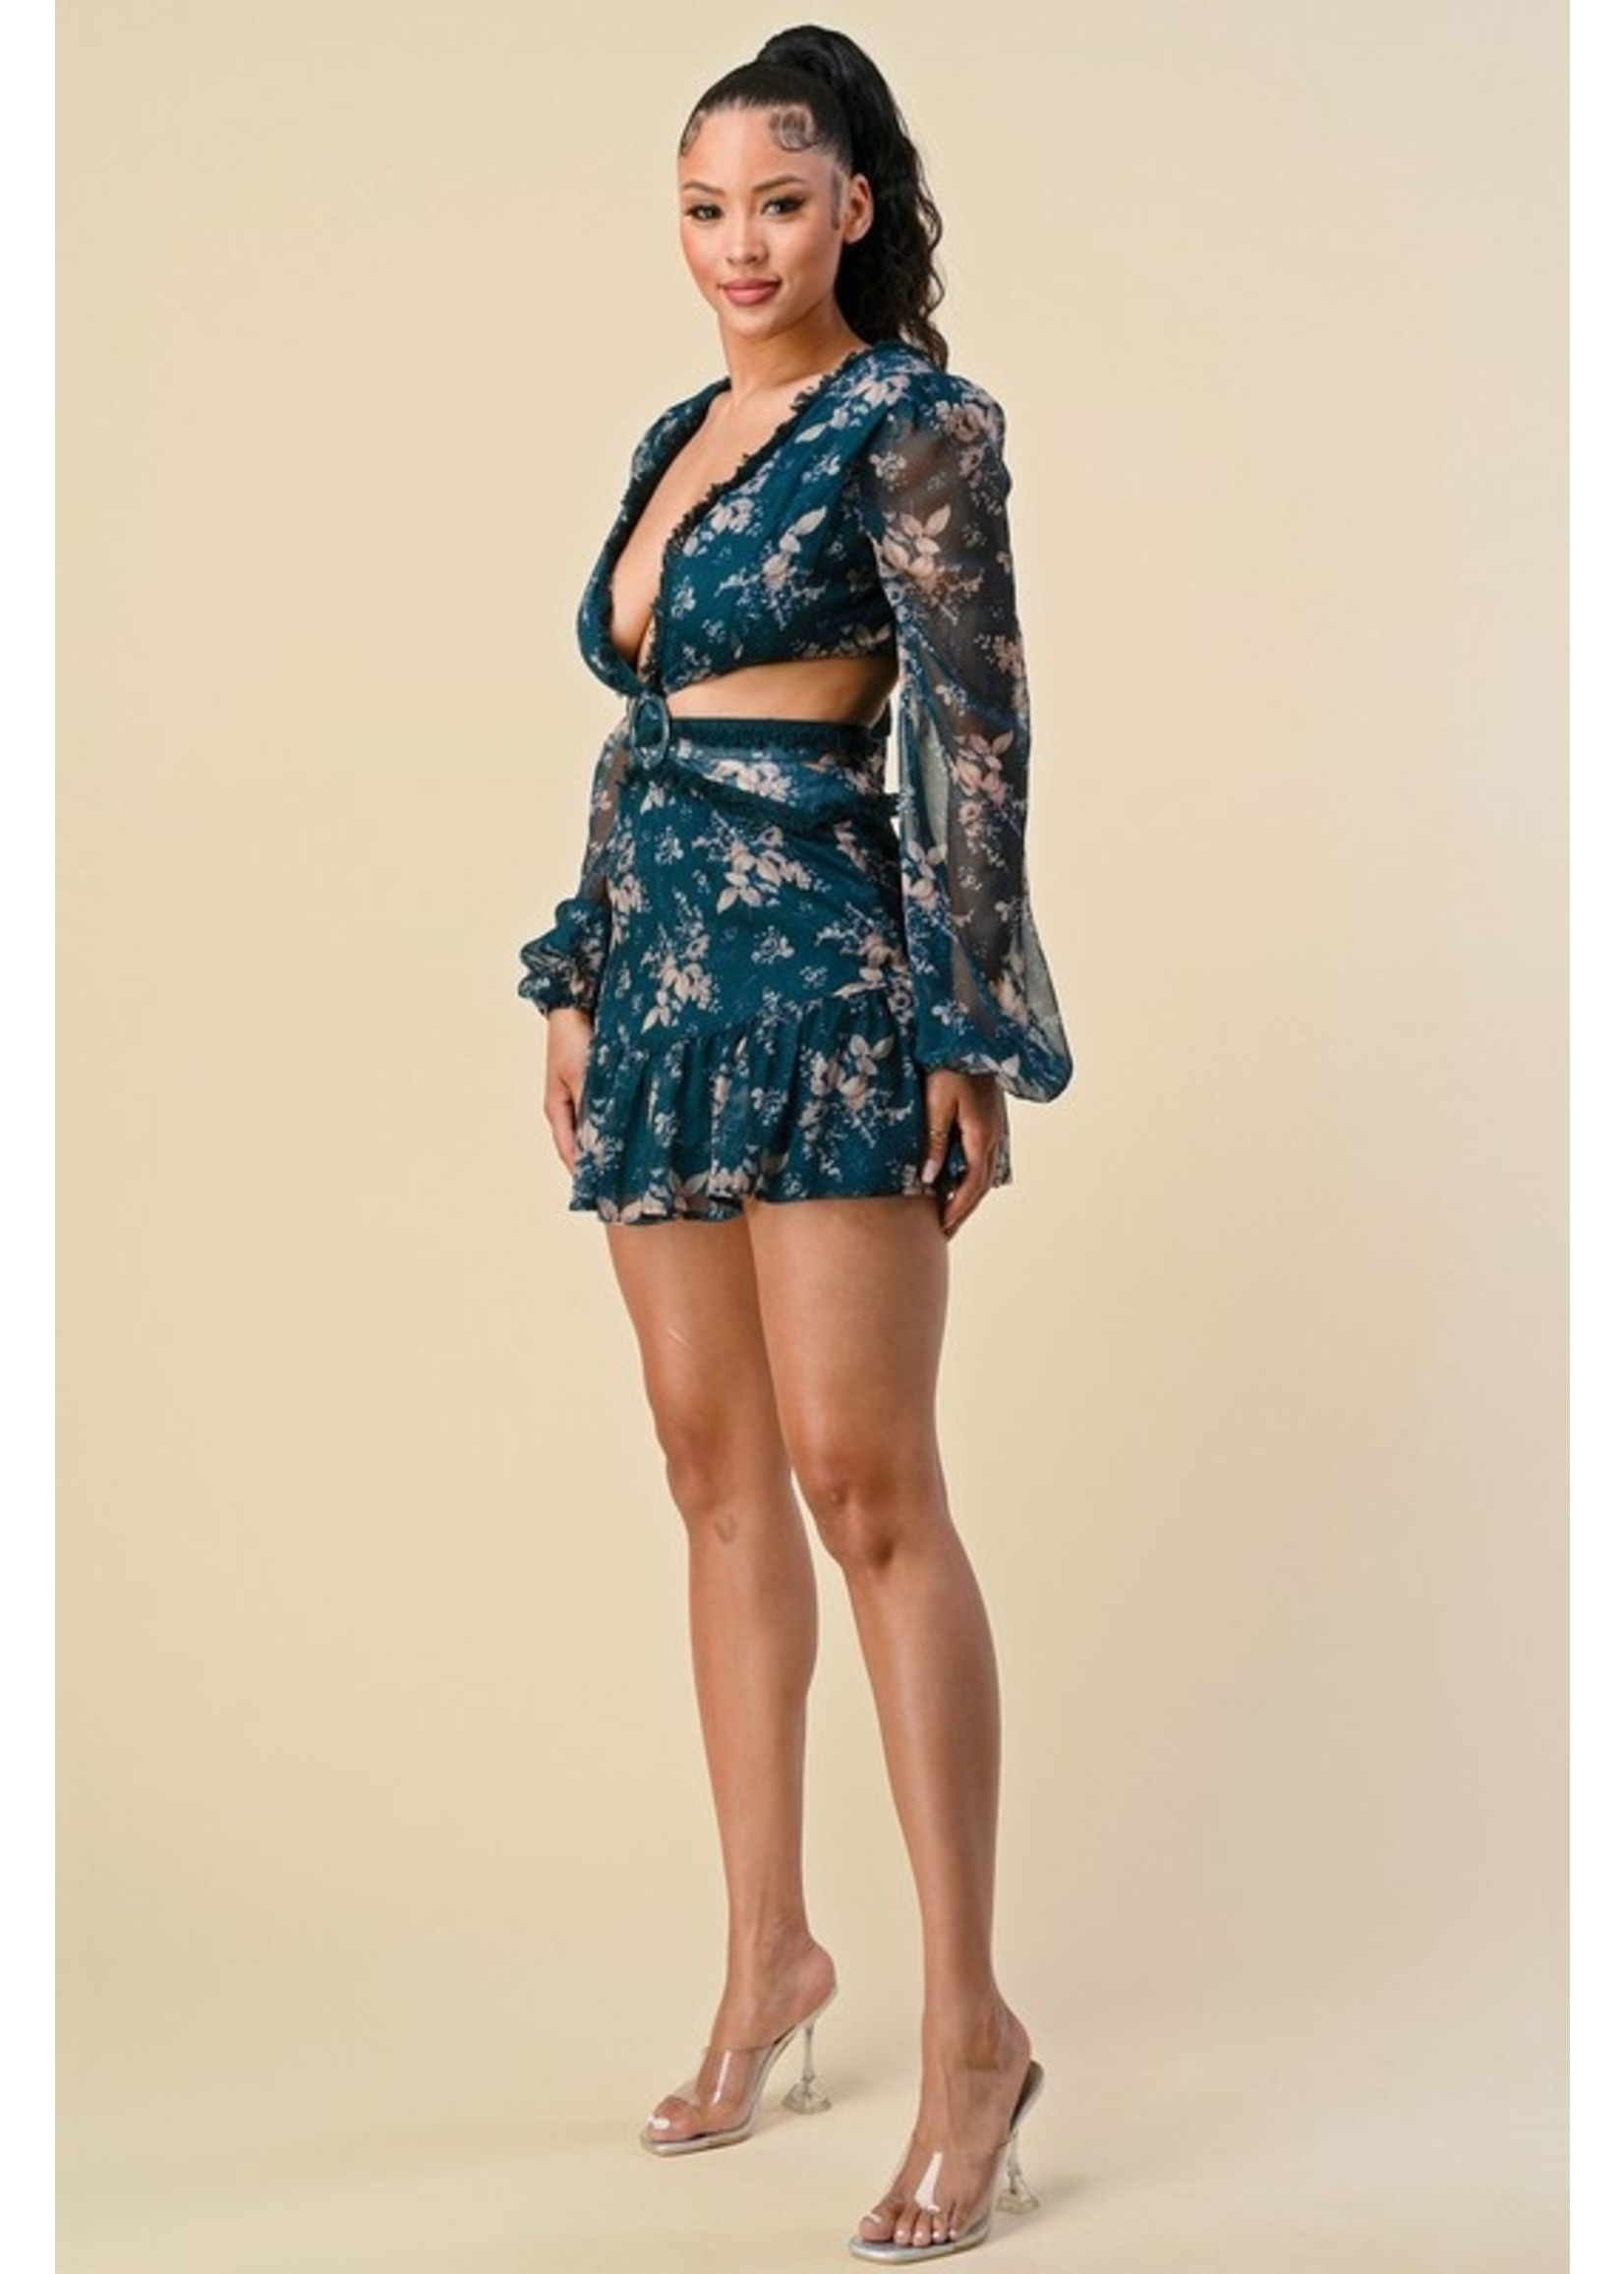 The Sang Clothing Rock It Dress Teal